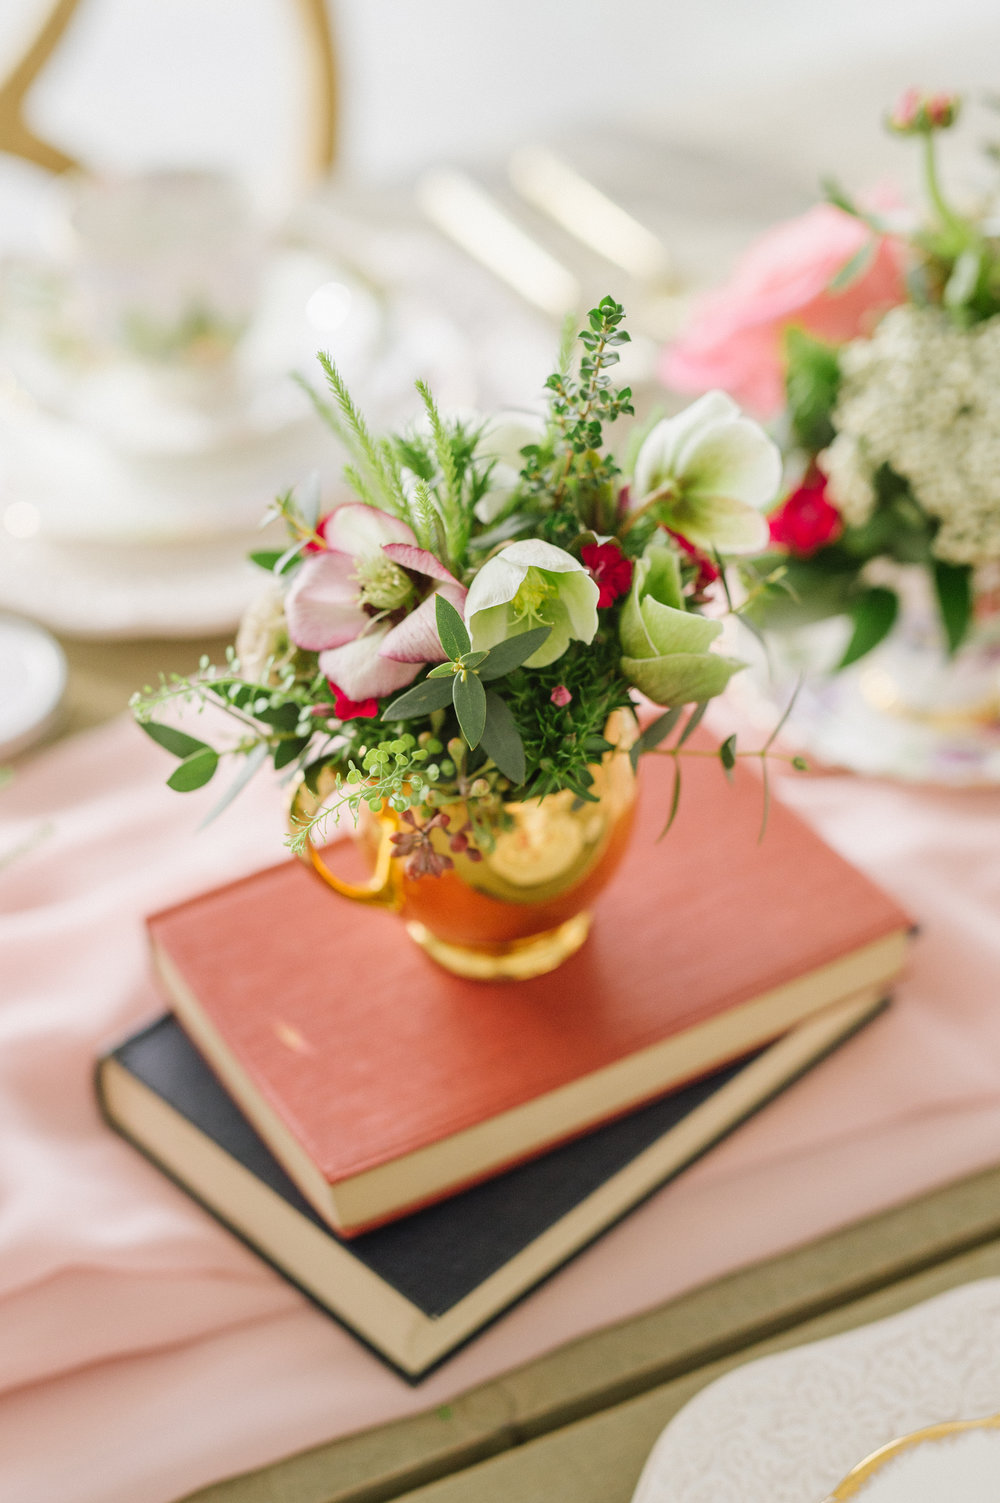 Calgary_Wedding_Photography_Spruce_Meadows_Bridal_Tea_2018_HR036.jpg